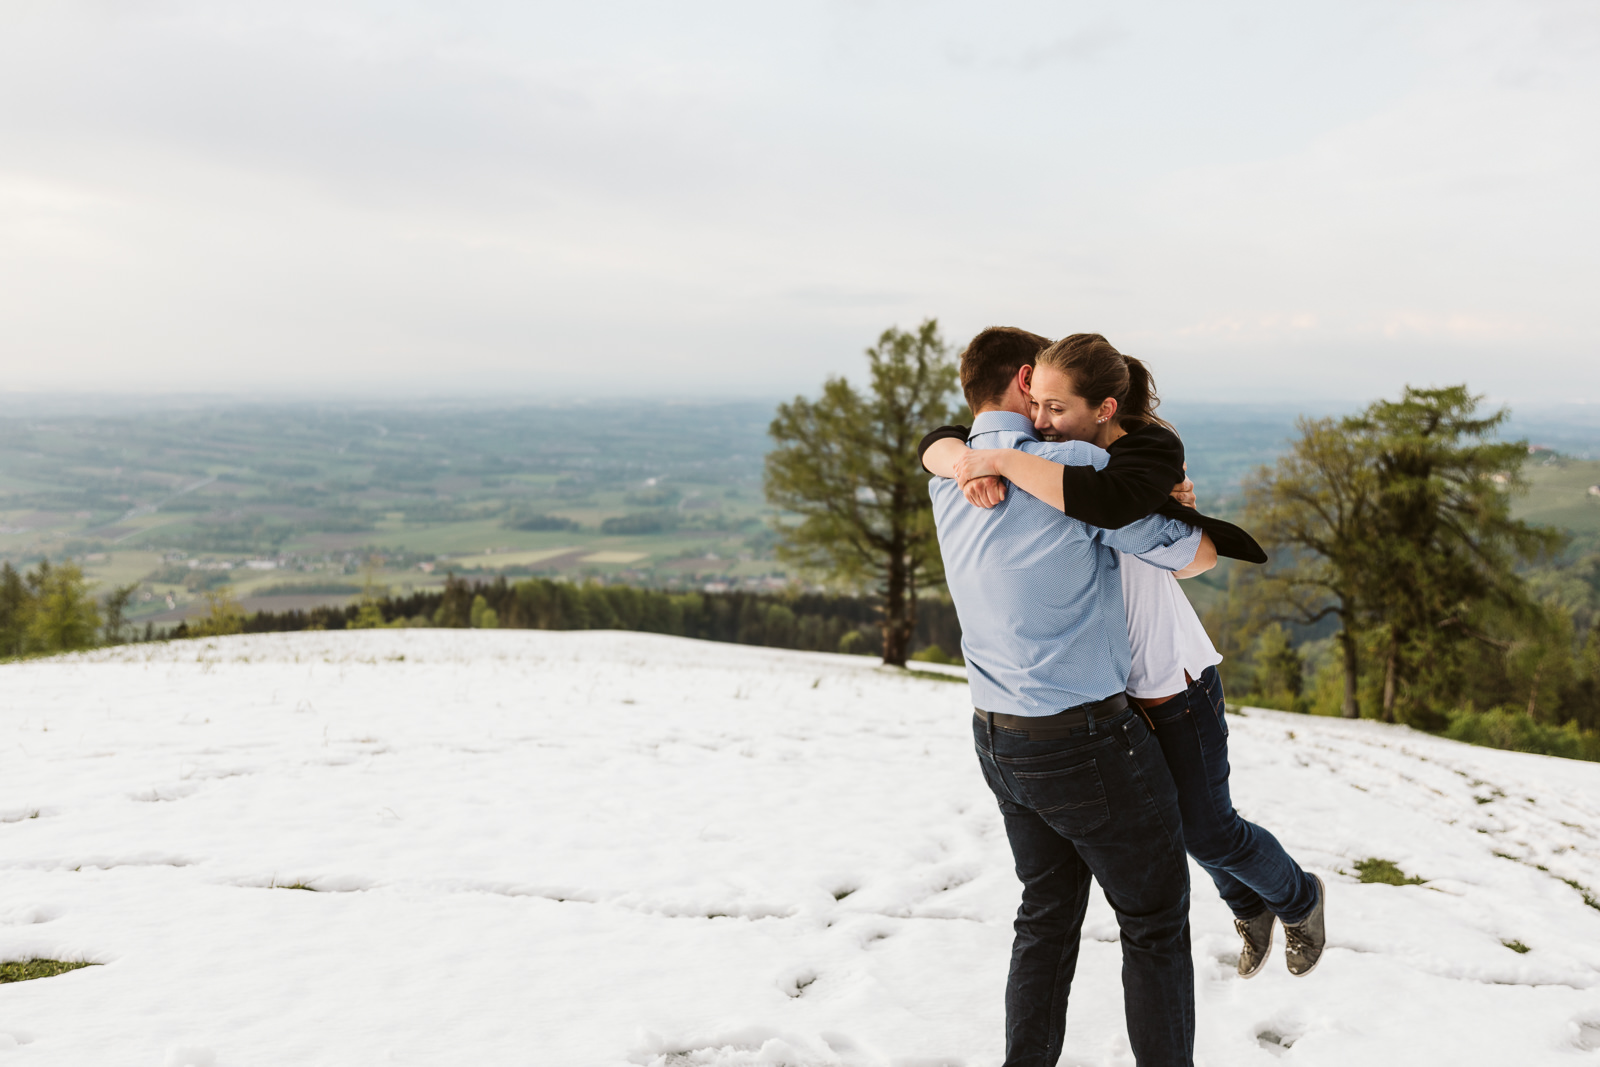 Austrian Wedding Award 2020 - Winner Engagement Shooting